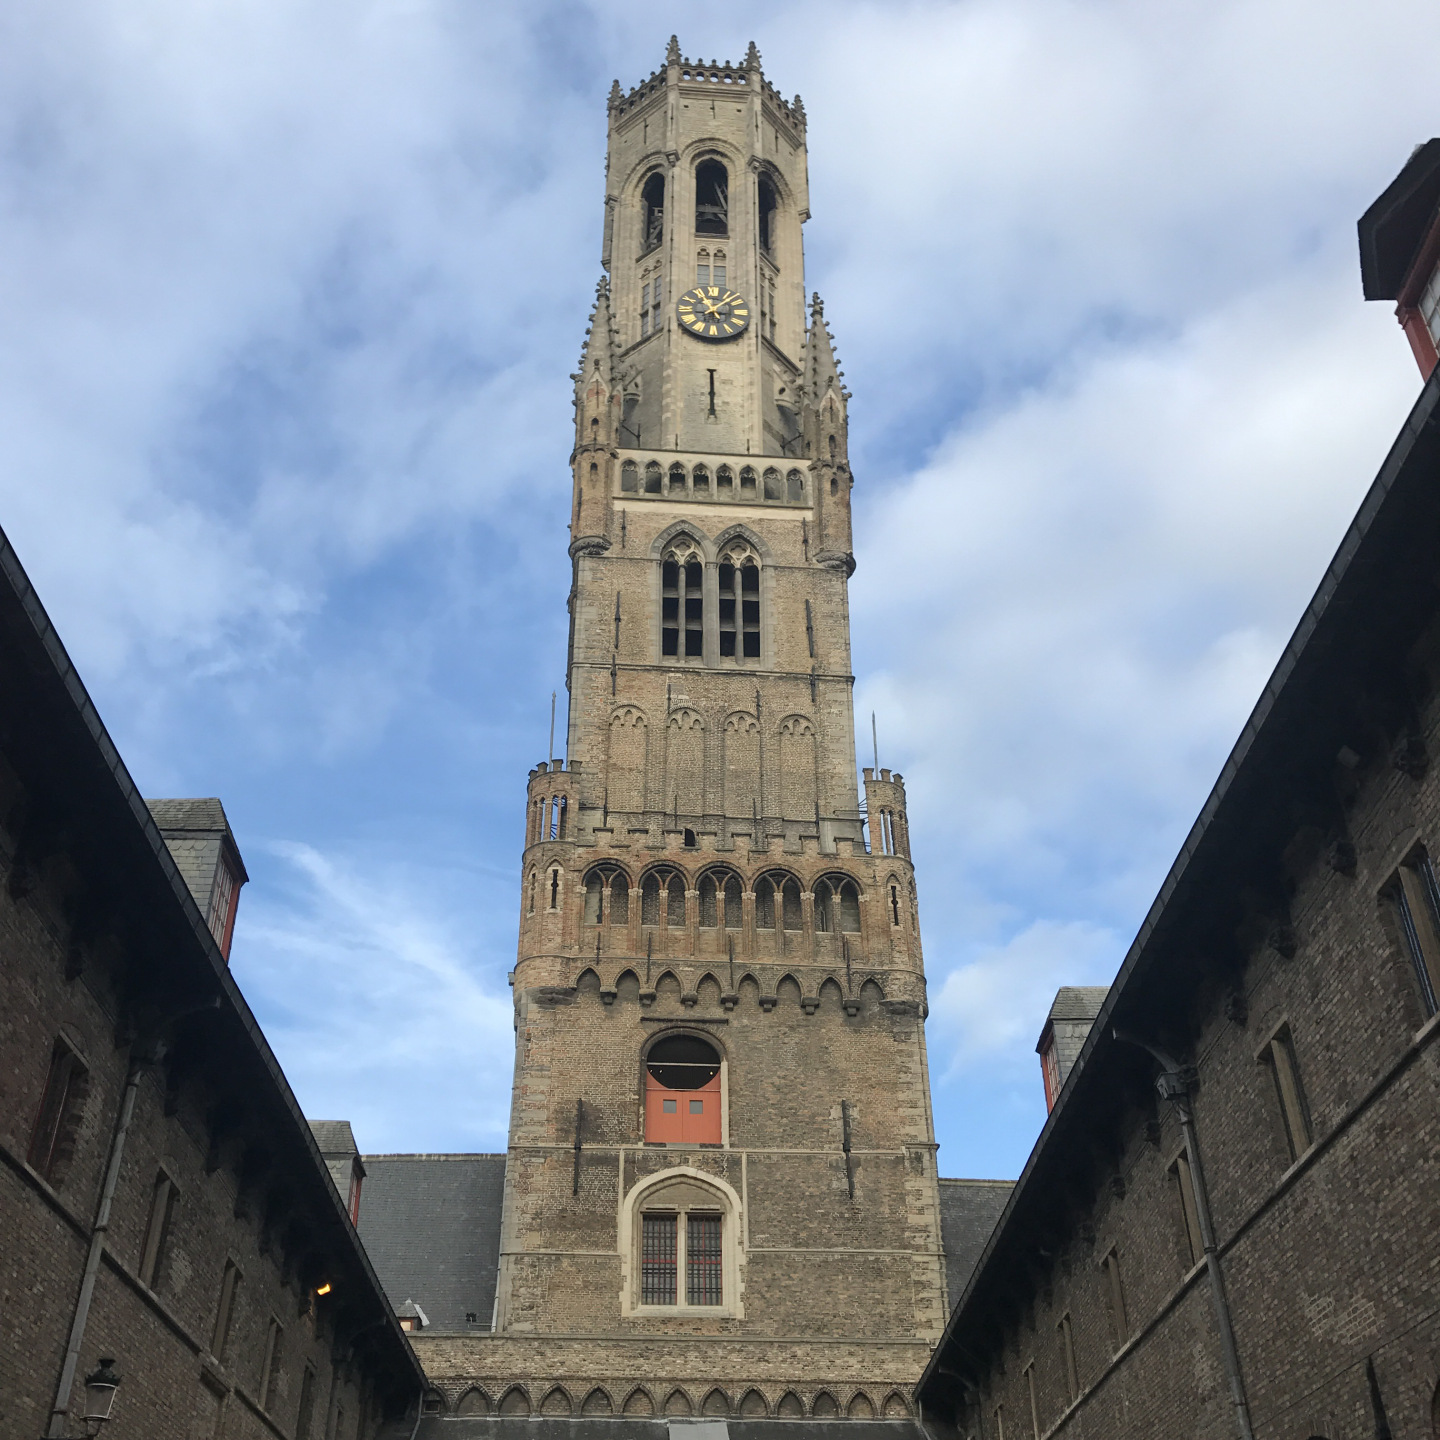 The view of the belfry of Bruges from within the courtyard behind it